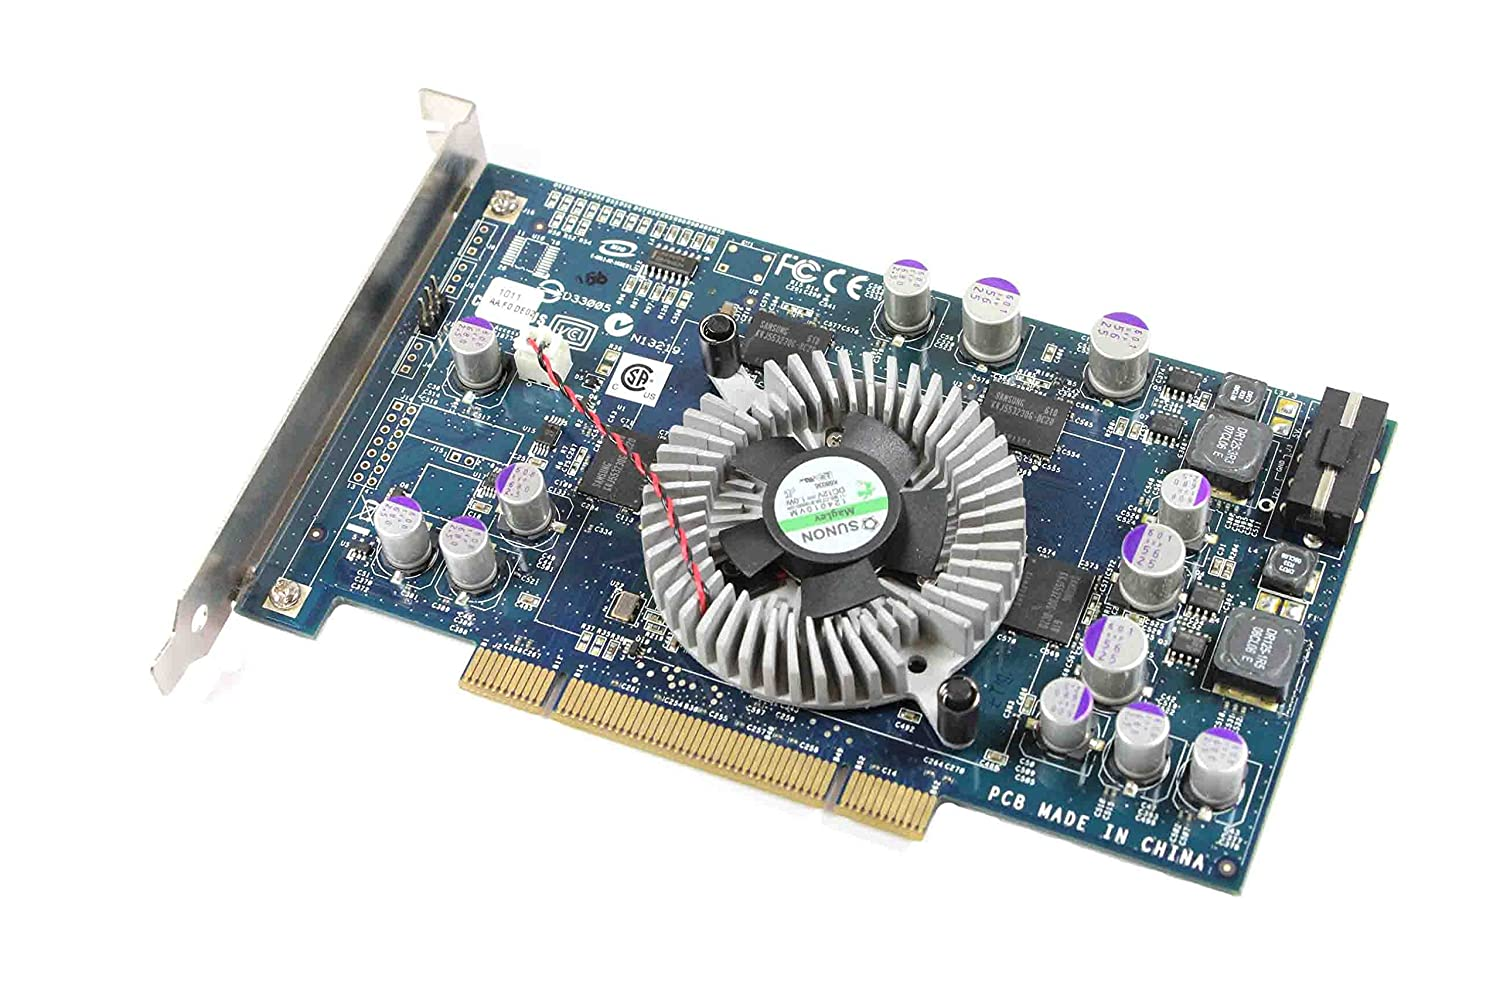 DRIVERS FOR AGEIA PHYSX PCI CARD